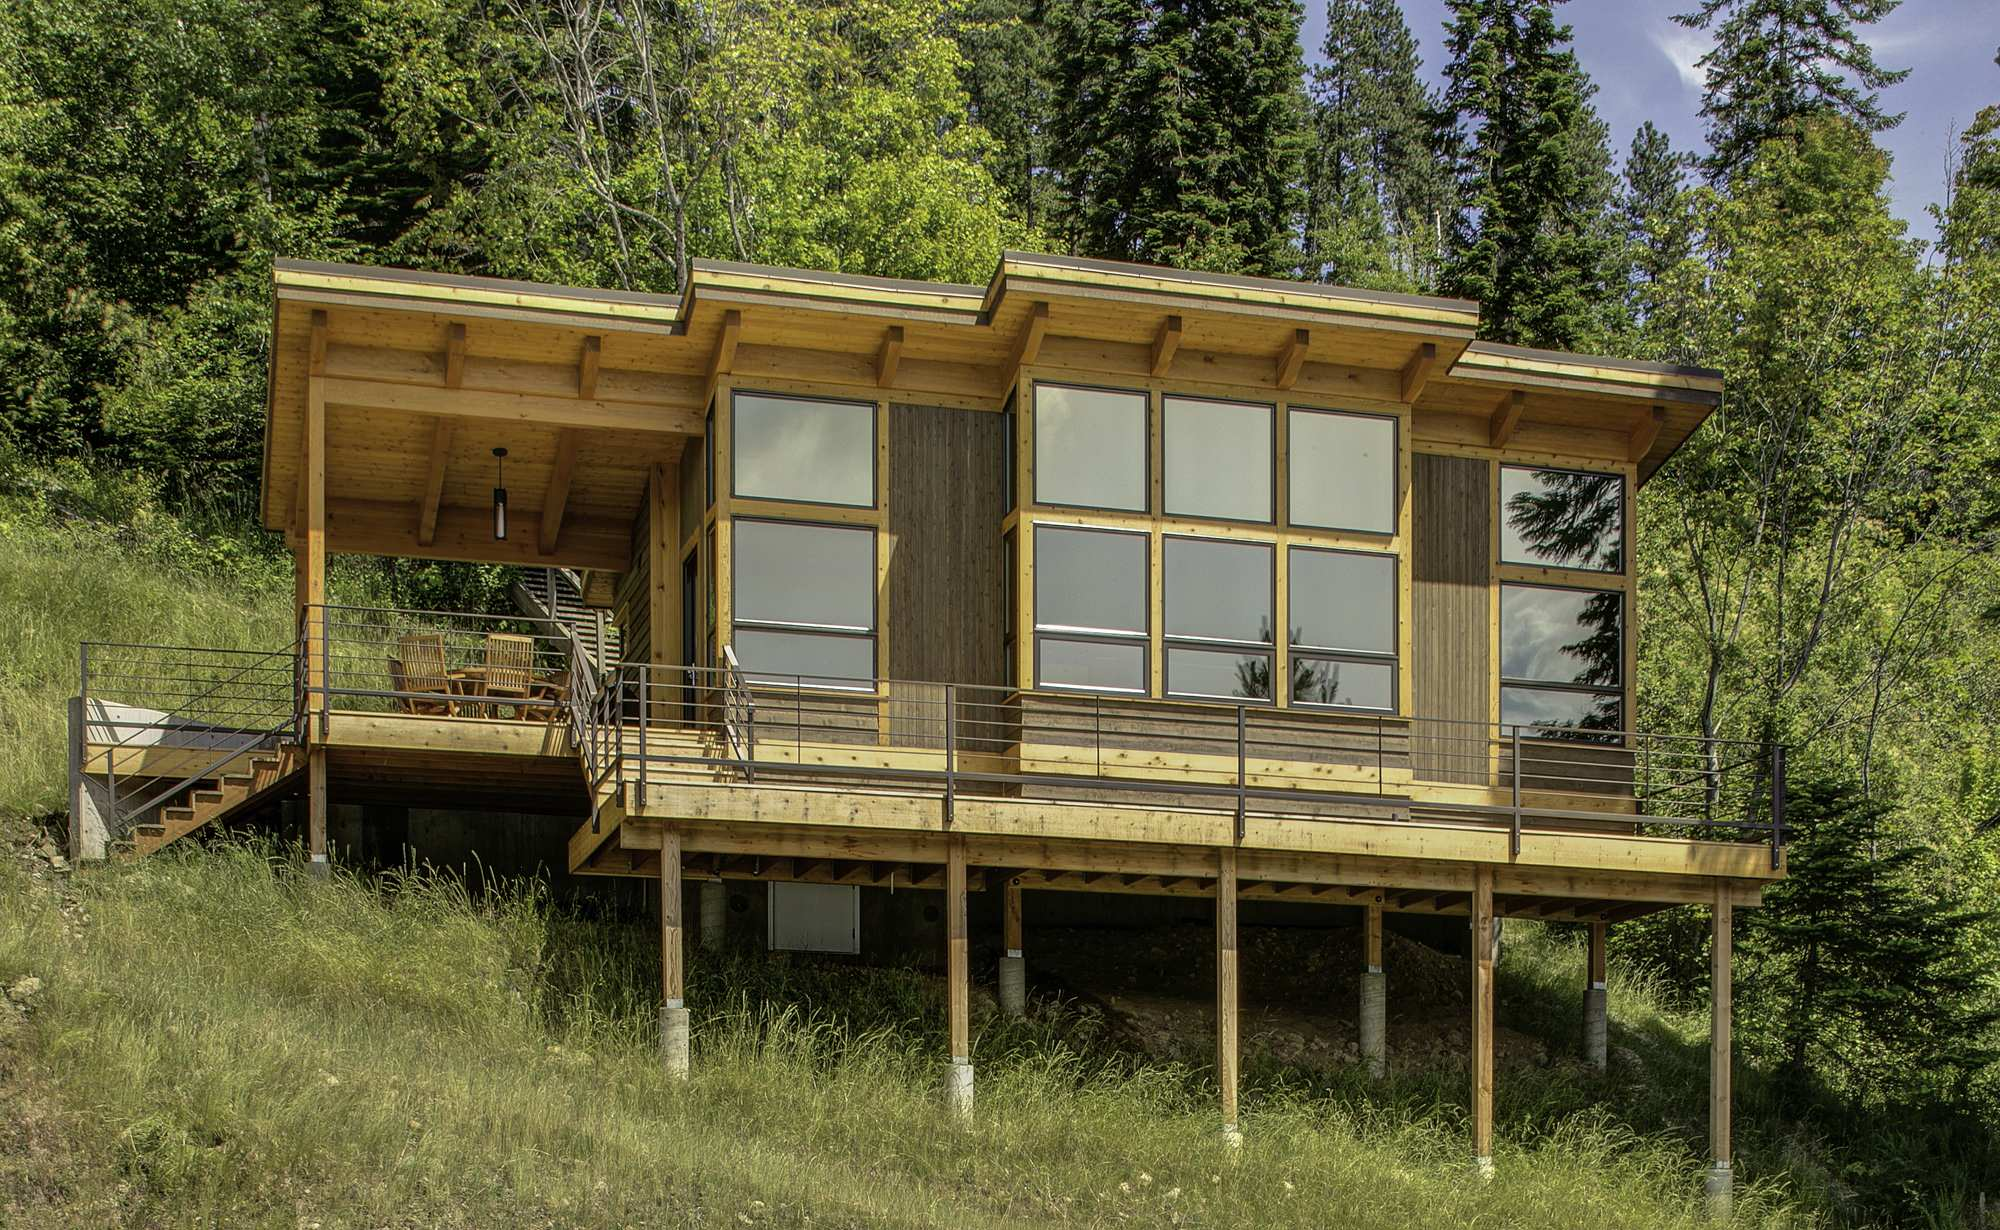 Elegant This Timber Framed Cabin Has Modern Lines And An Energy Efficient Shell.  There Is